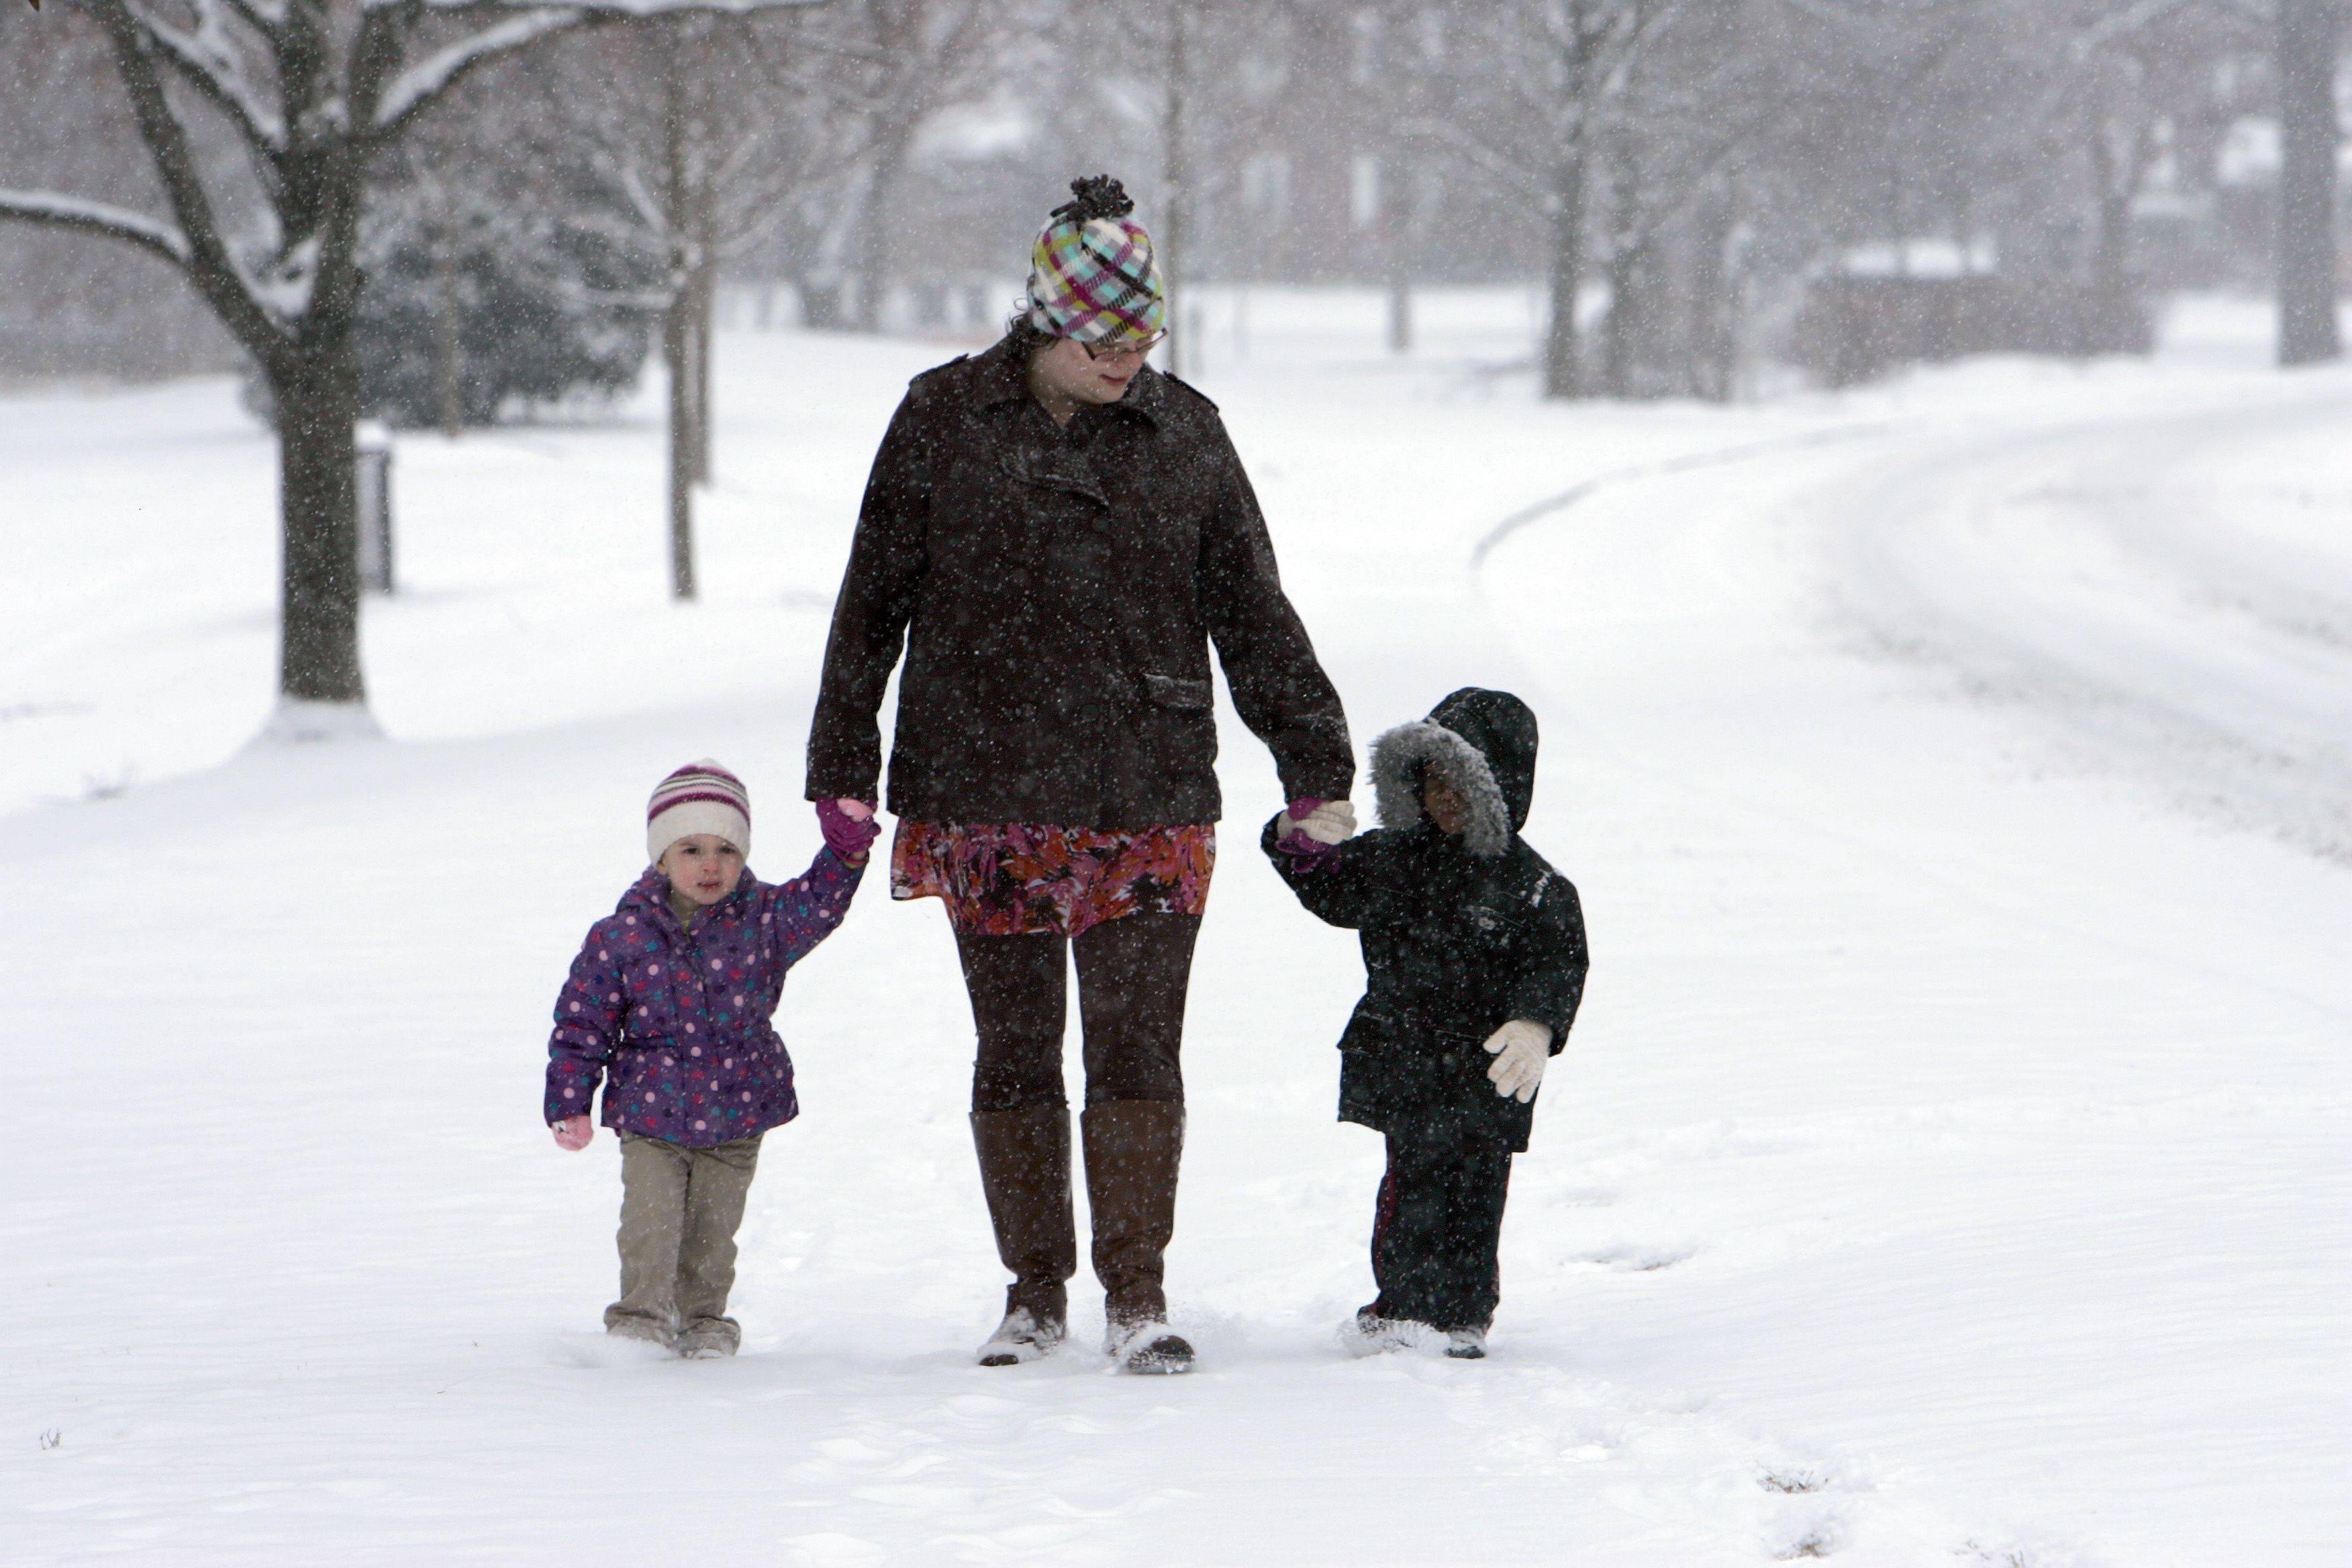 """It's nice to be outside, when it's cold out. I really like it"" says Bethlehem Lutheran Church day care teacher Tina Zastrow, pictured center. Zastrow, Avery Thielen, 2, left and Deondre Stanton, 3 enjoy a stroll in the winter wonderland that was provided on Tuesday. The group was taking their daily walk, this time along Lords Park in Elgin. More flurries are due for Wednesday according to weather.com."